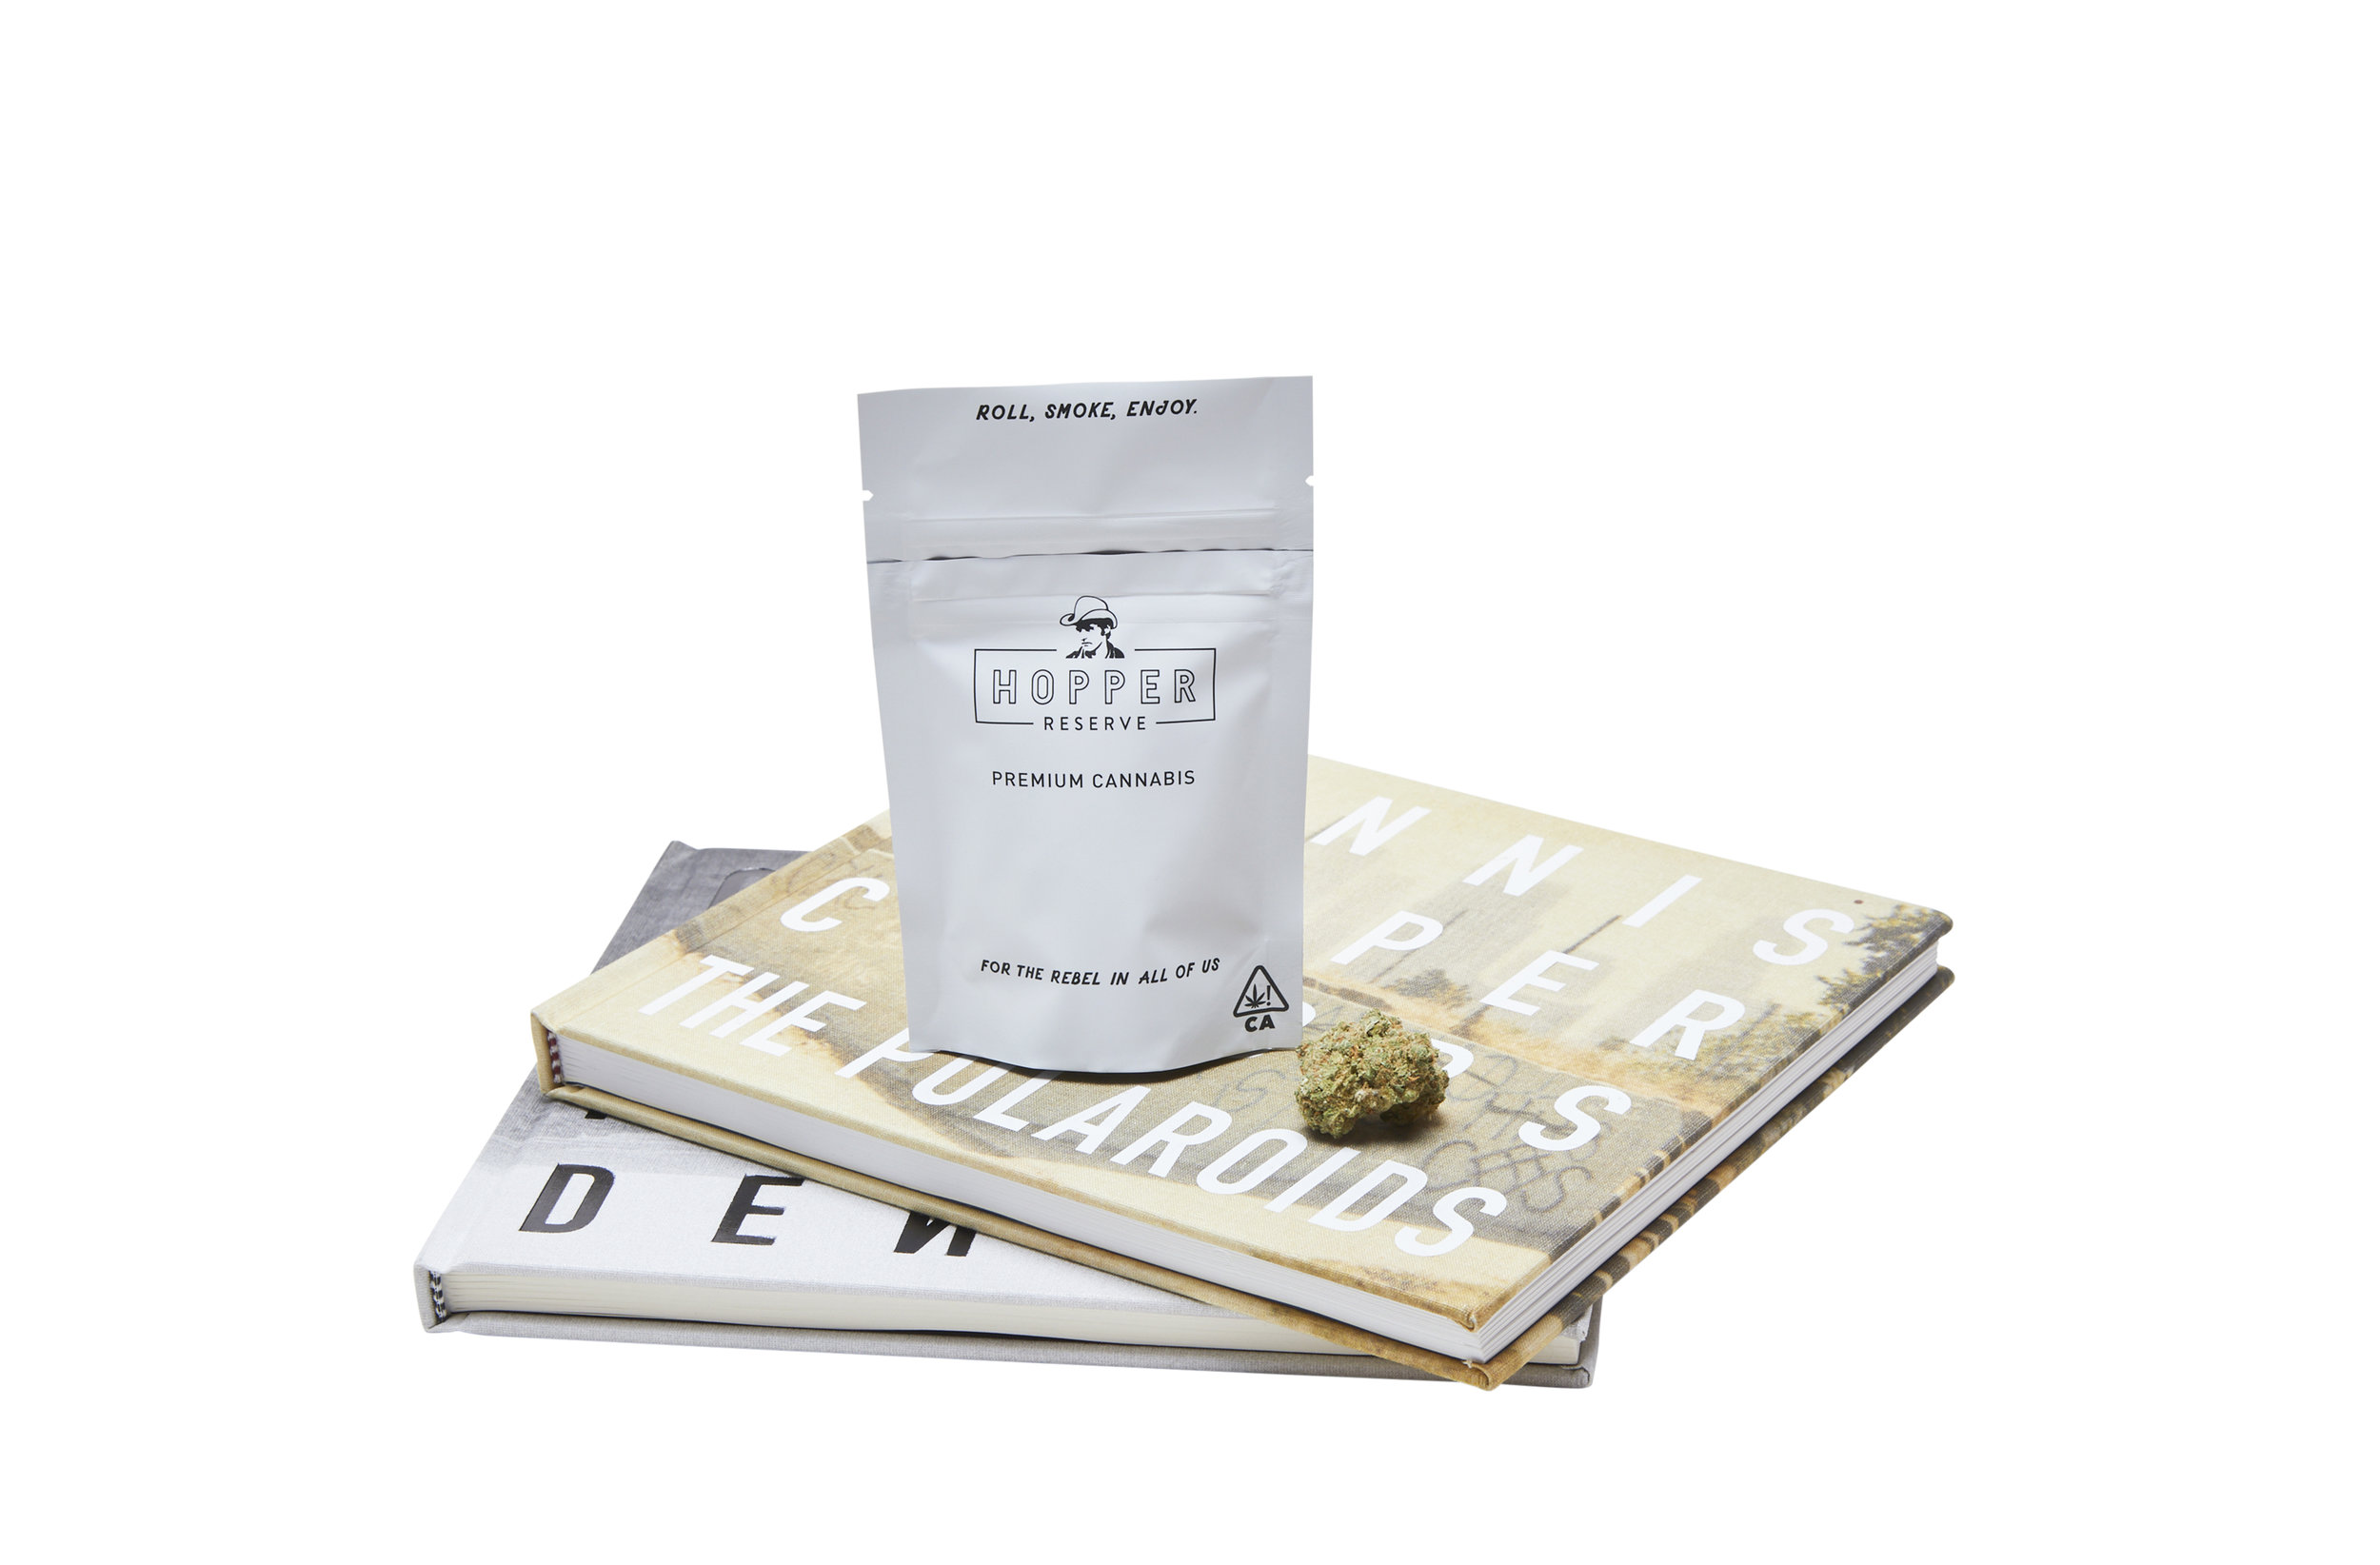 Hybrid Blend : For The Mystic Wanderer - This bag contains:1 Gram of premium flowerPapers for rollingMatches for toking